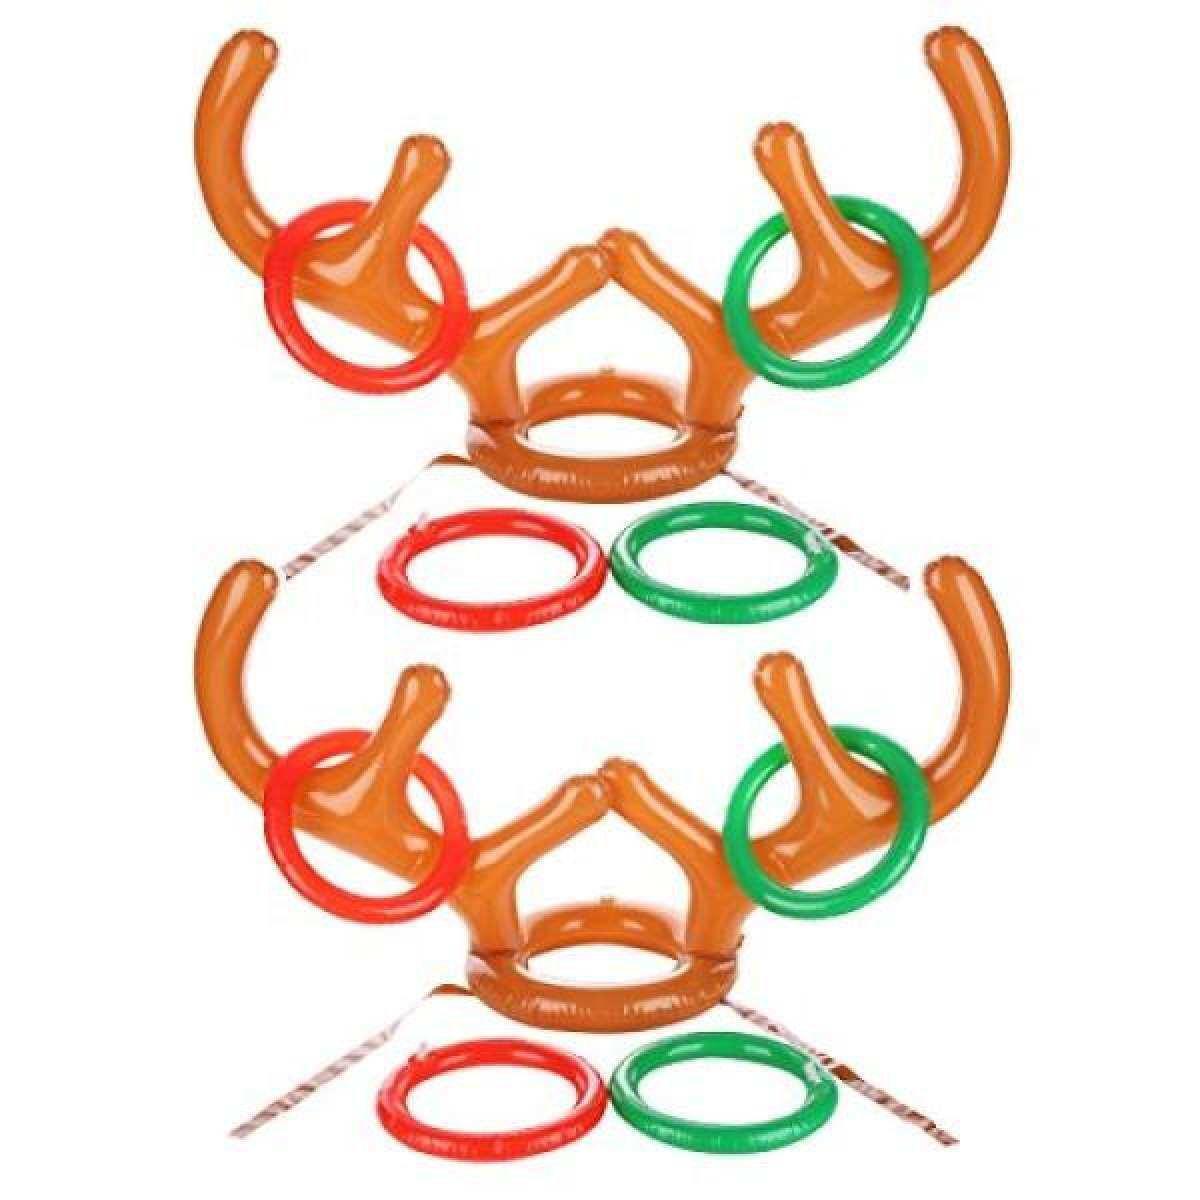 e785fa9f4d678 Uniqhia Two-Player Inflatable Reindeer Antler Ring Toss Game for Christmas  Party